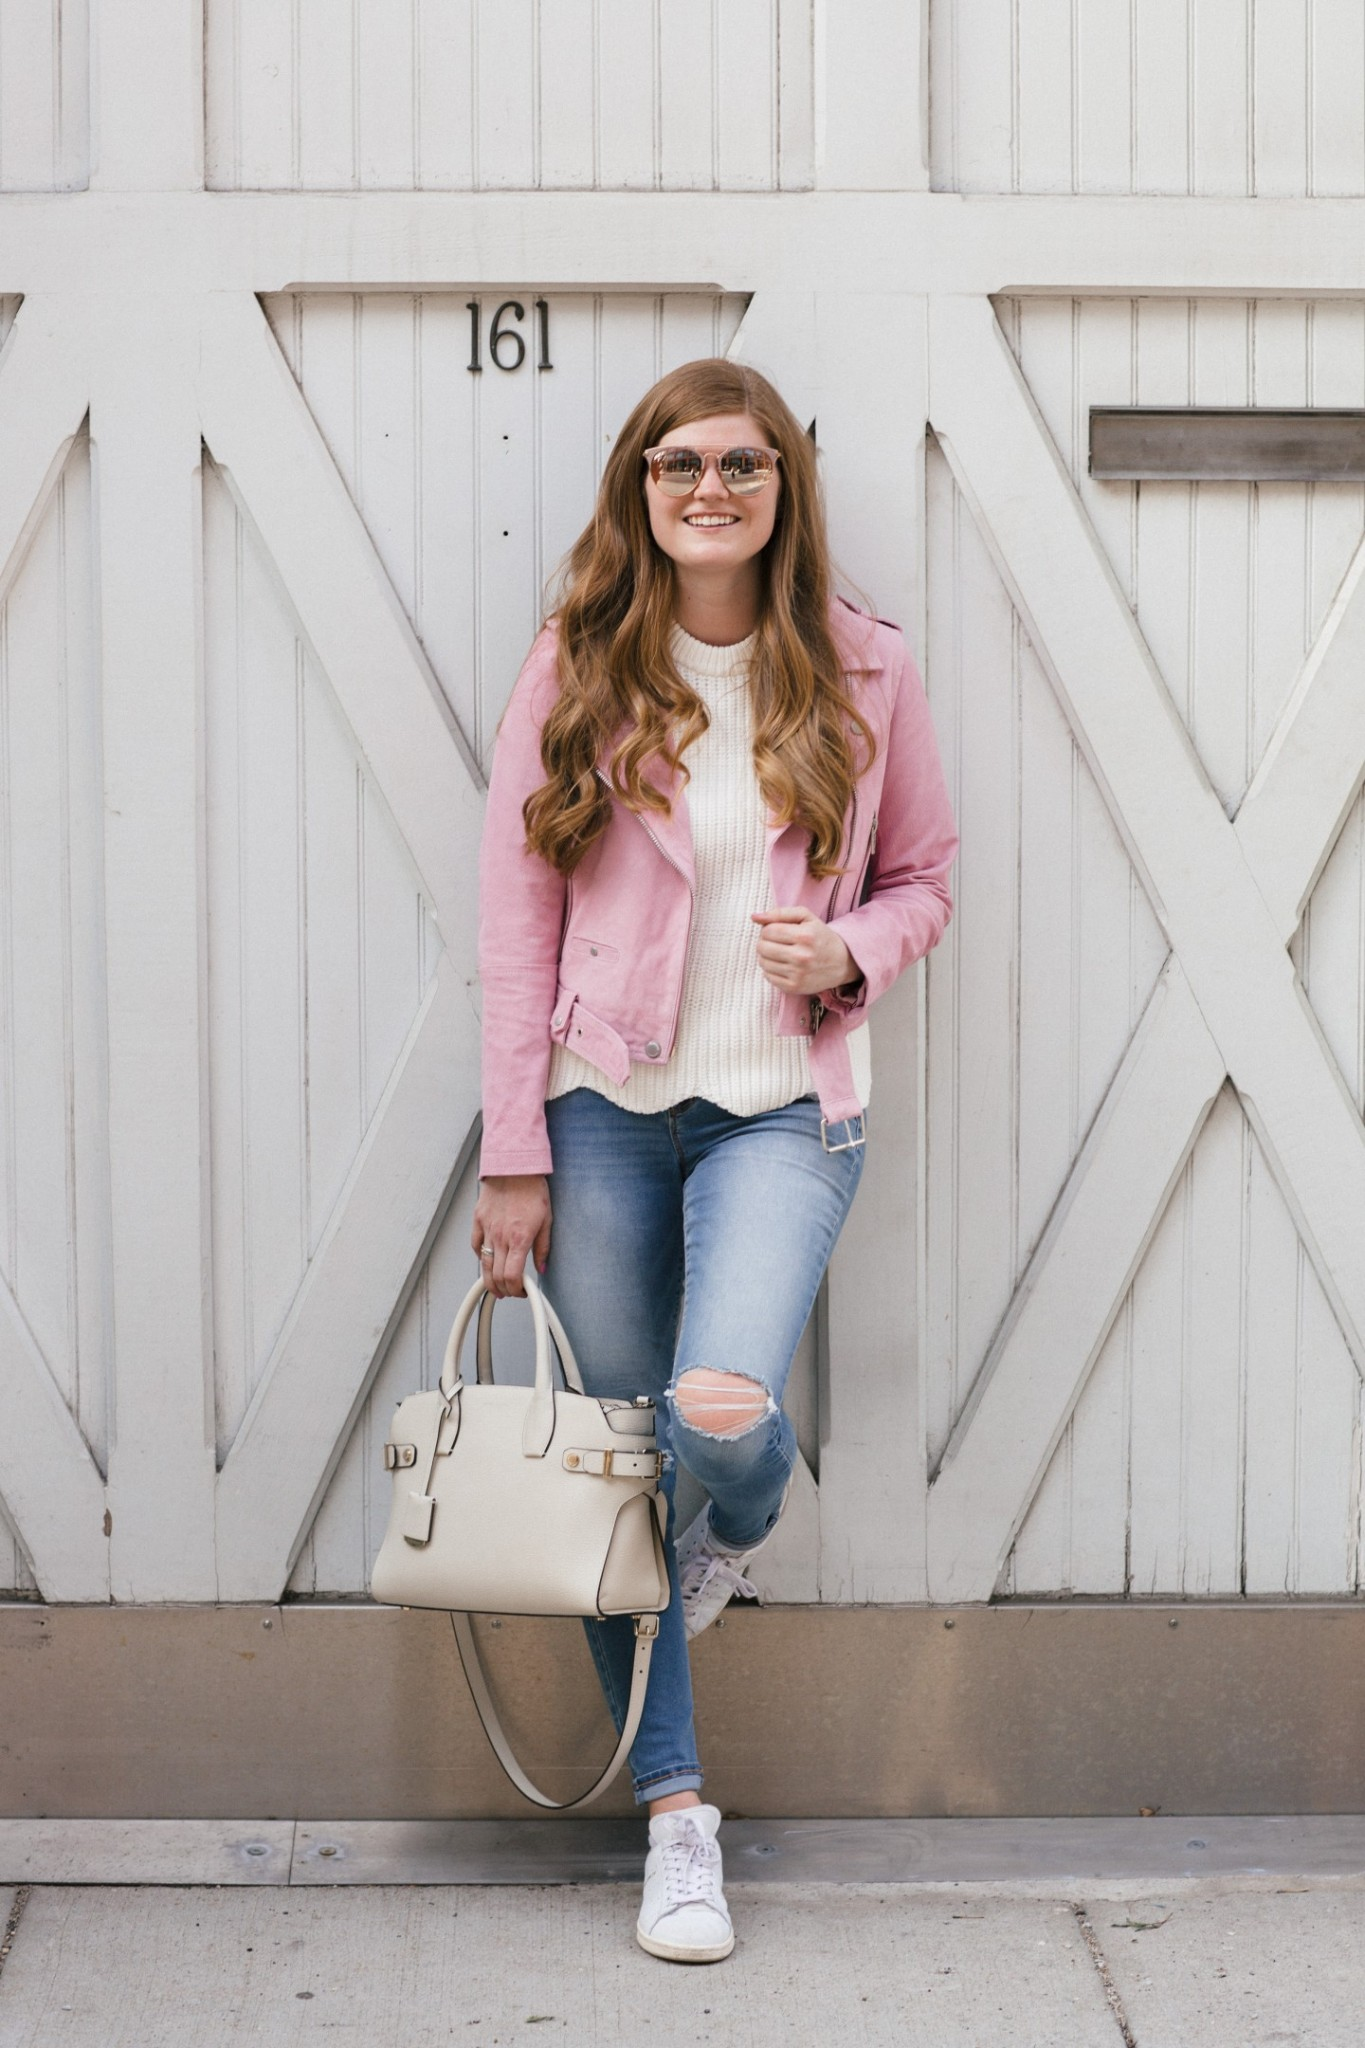 Lifestyle blogger Mollie Sheperdson styles a pink moto jacket for spring